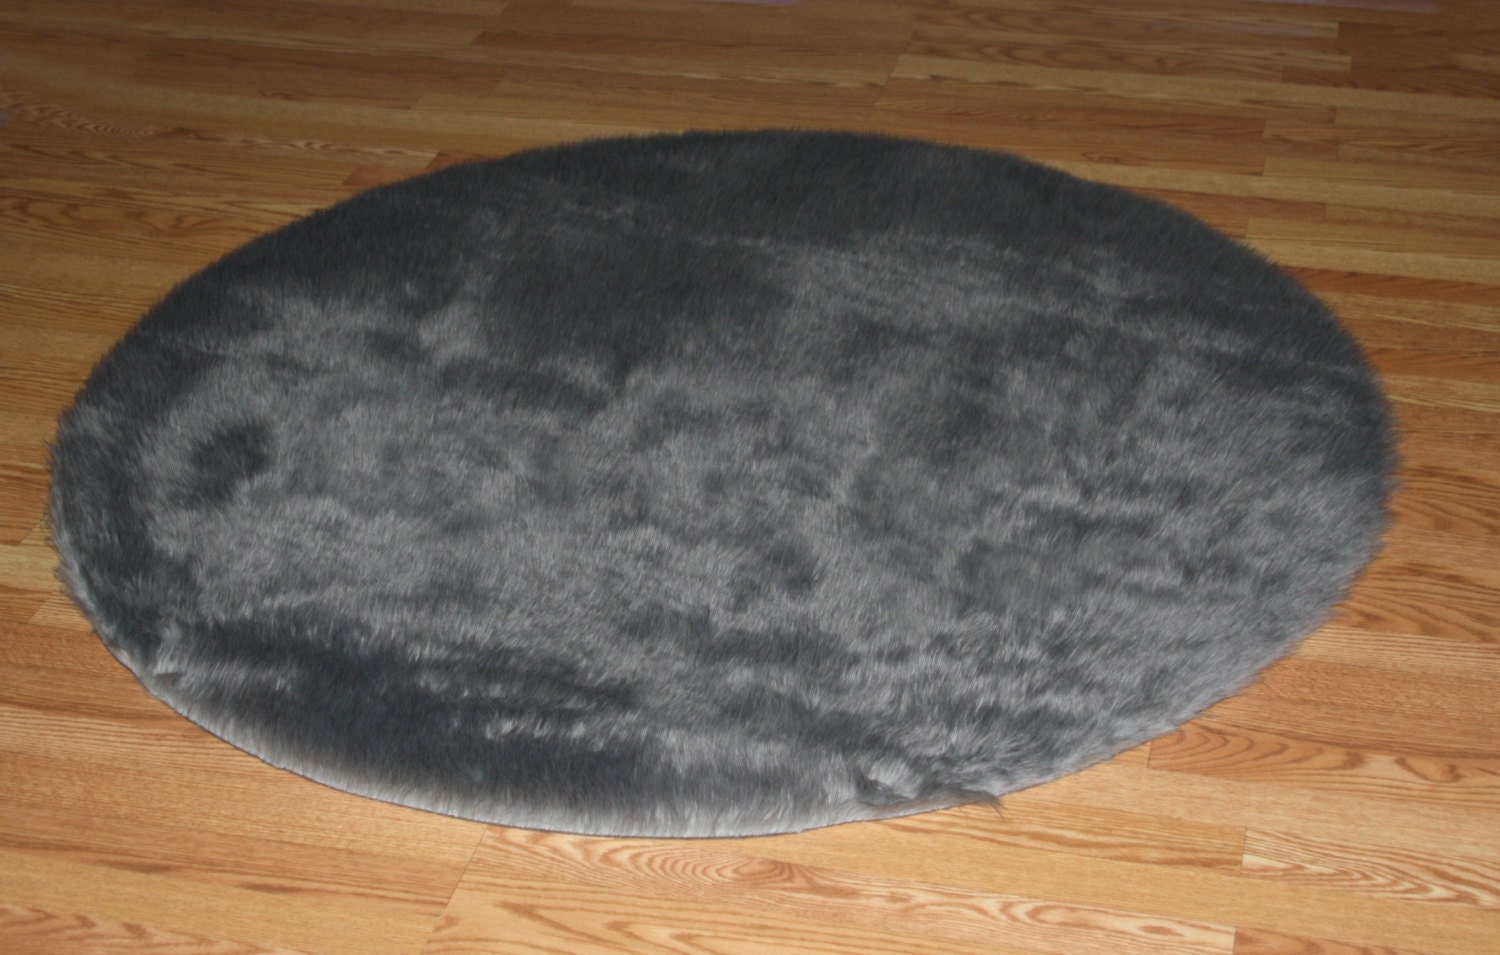 3 39 round small gray faux fur rug non slip washable great. Black Bedroom Furniture Sets. Home Design Ideas